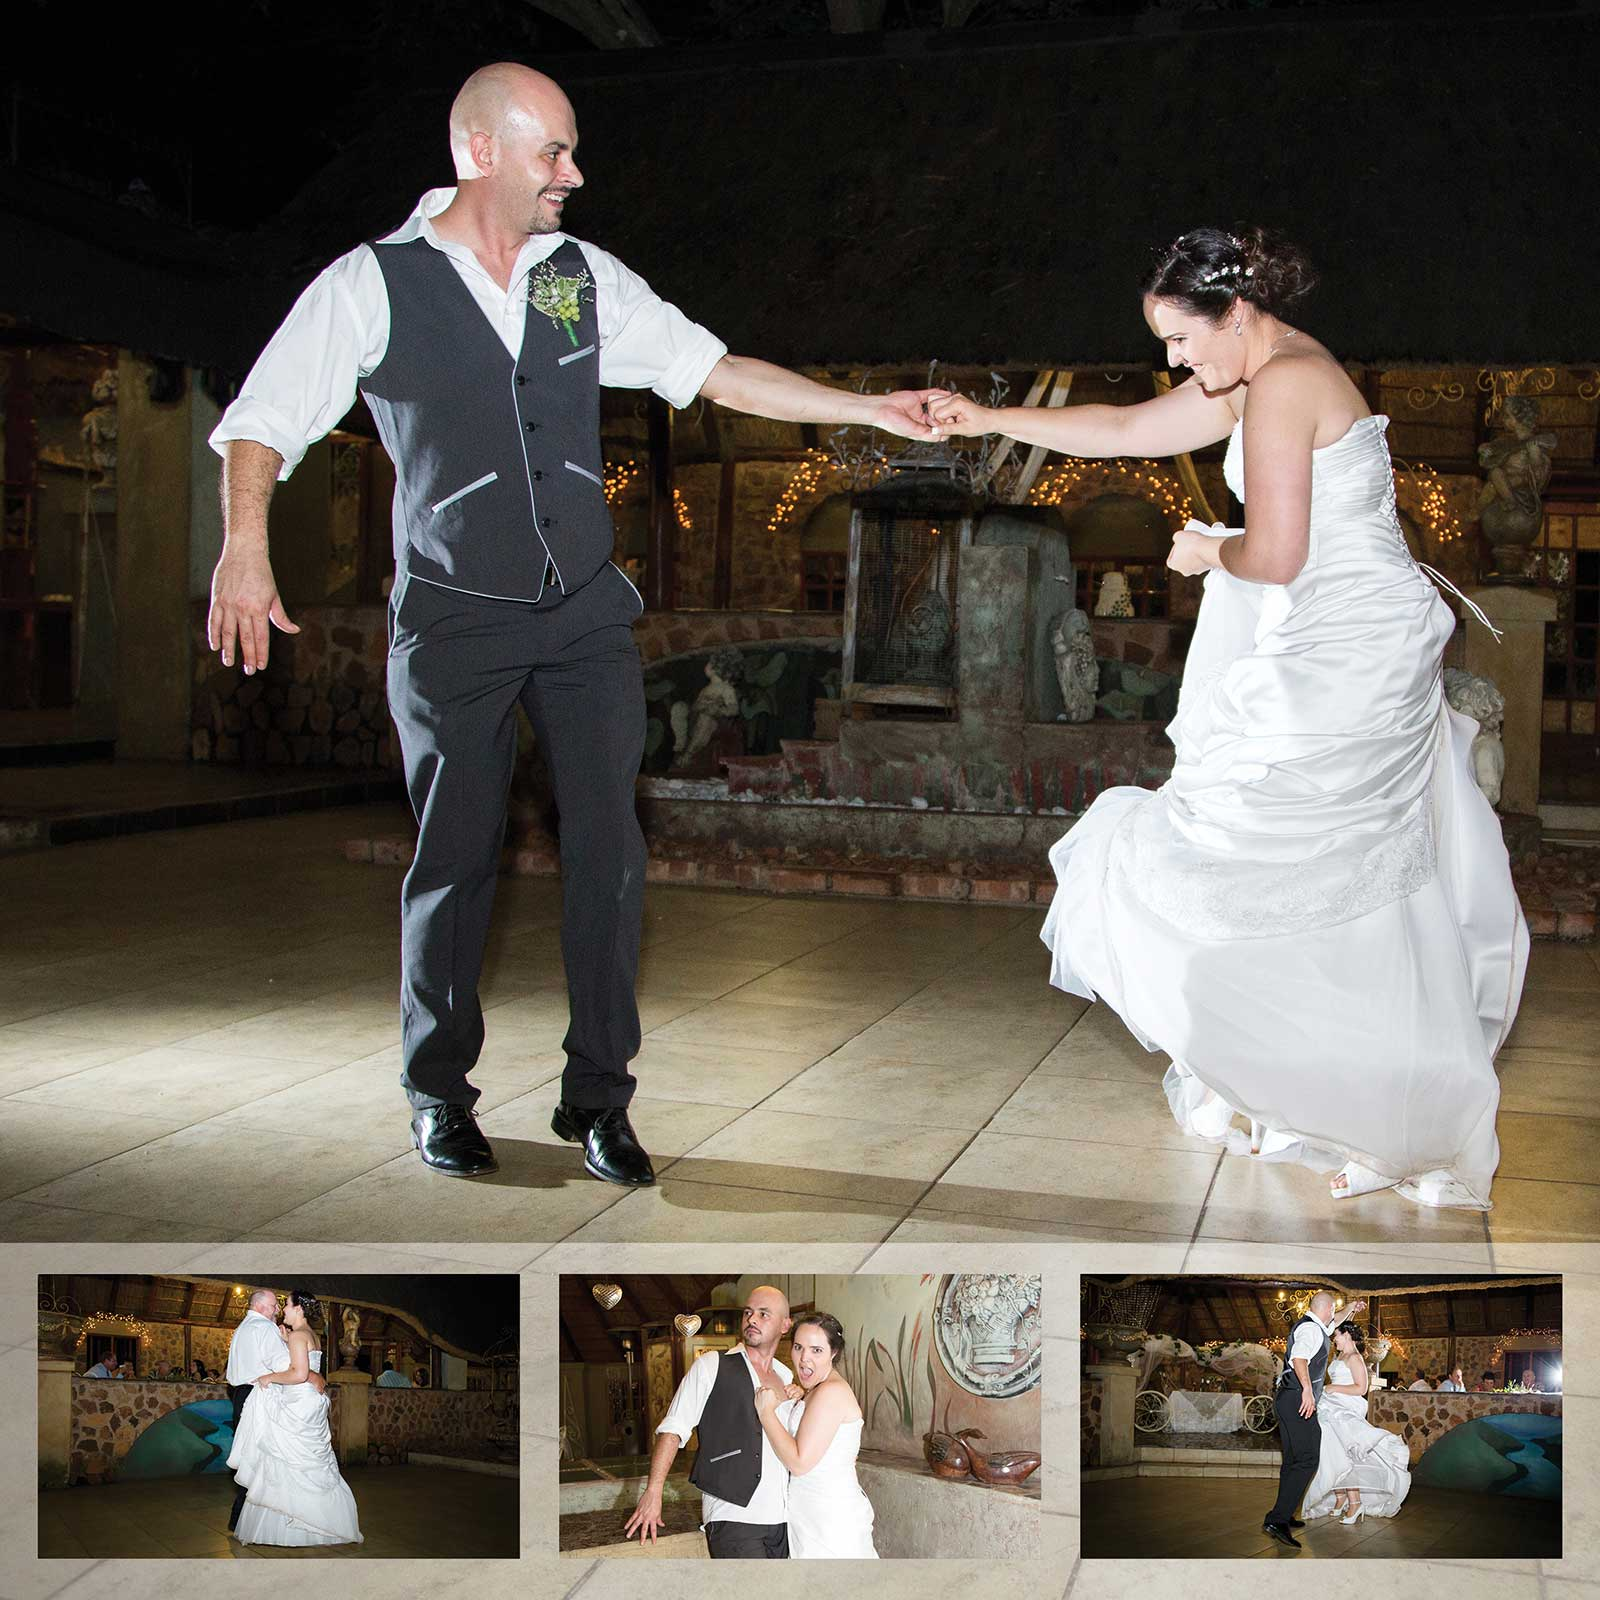 Wedding photography in Gauteng